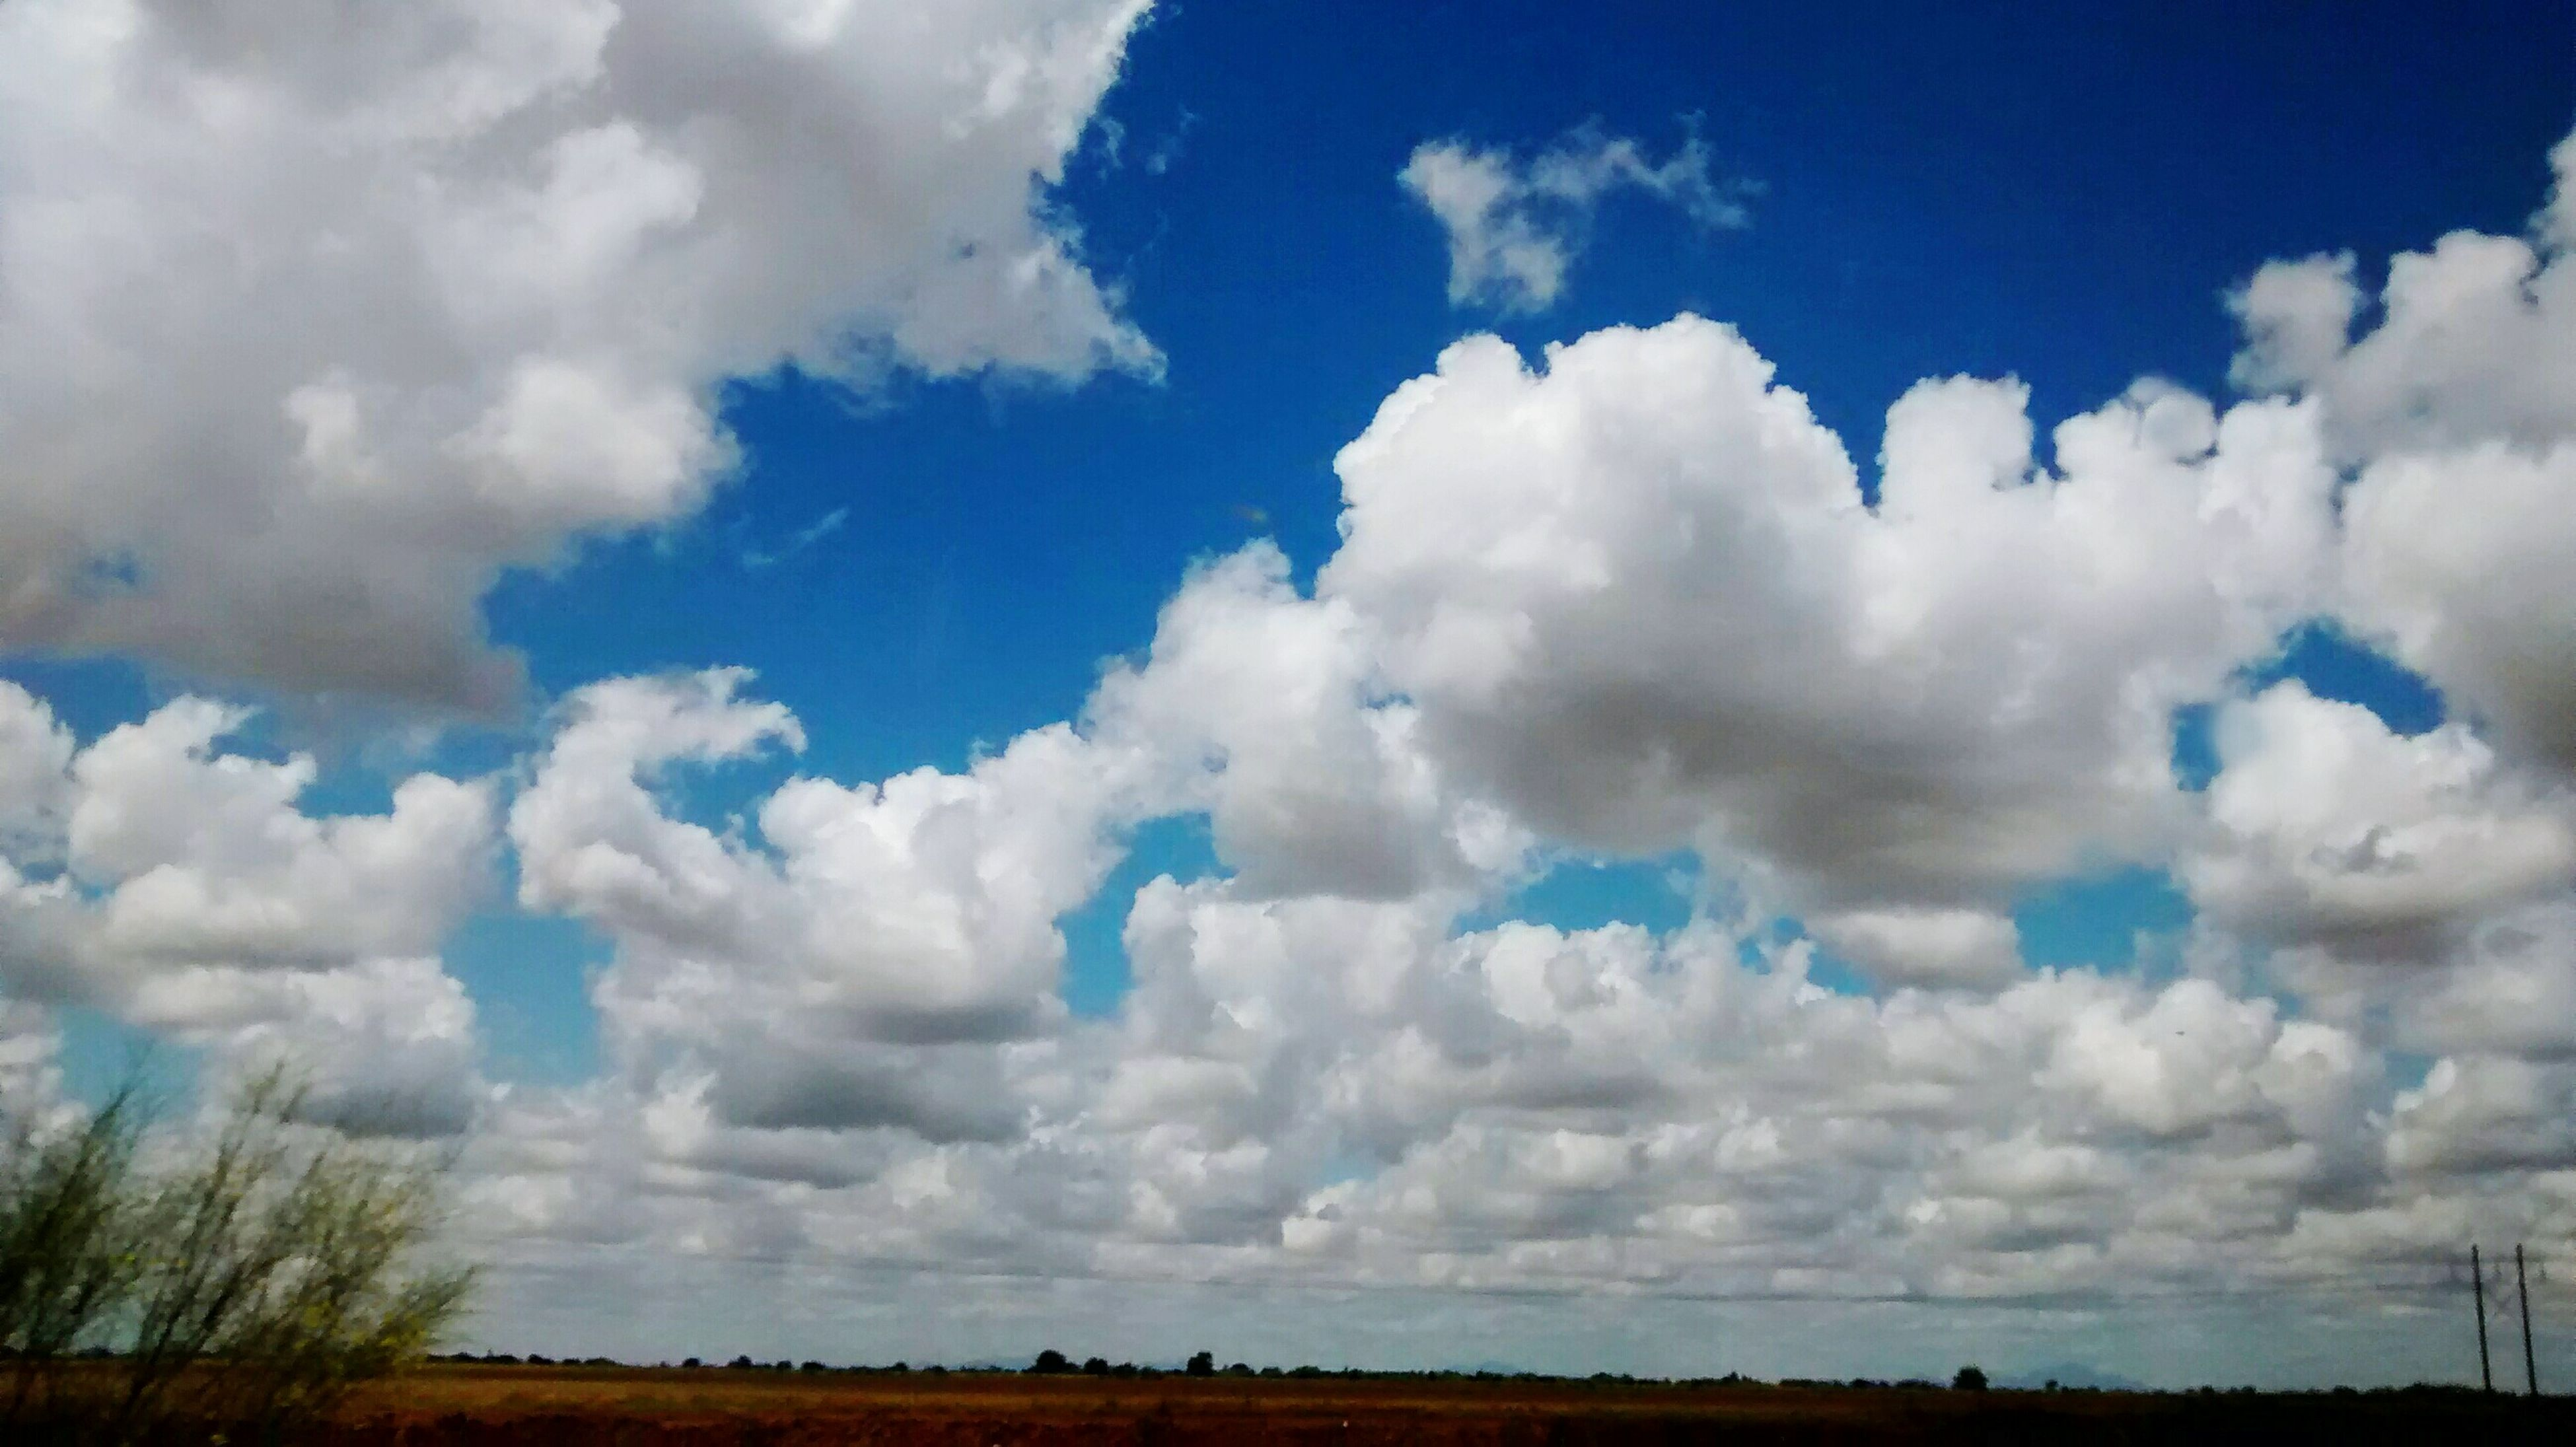 sky, cloud - sky, tranquil scene, tranquility, scenics, landscape, cloudy, cloud, beauty in nature, field, nature, blue, cloudscape, horizon over land, idyllic, day, outdoors, non-urban scene, grass, rural scene